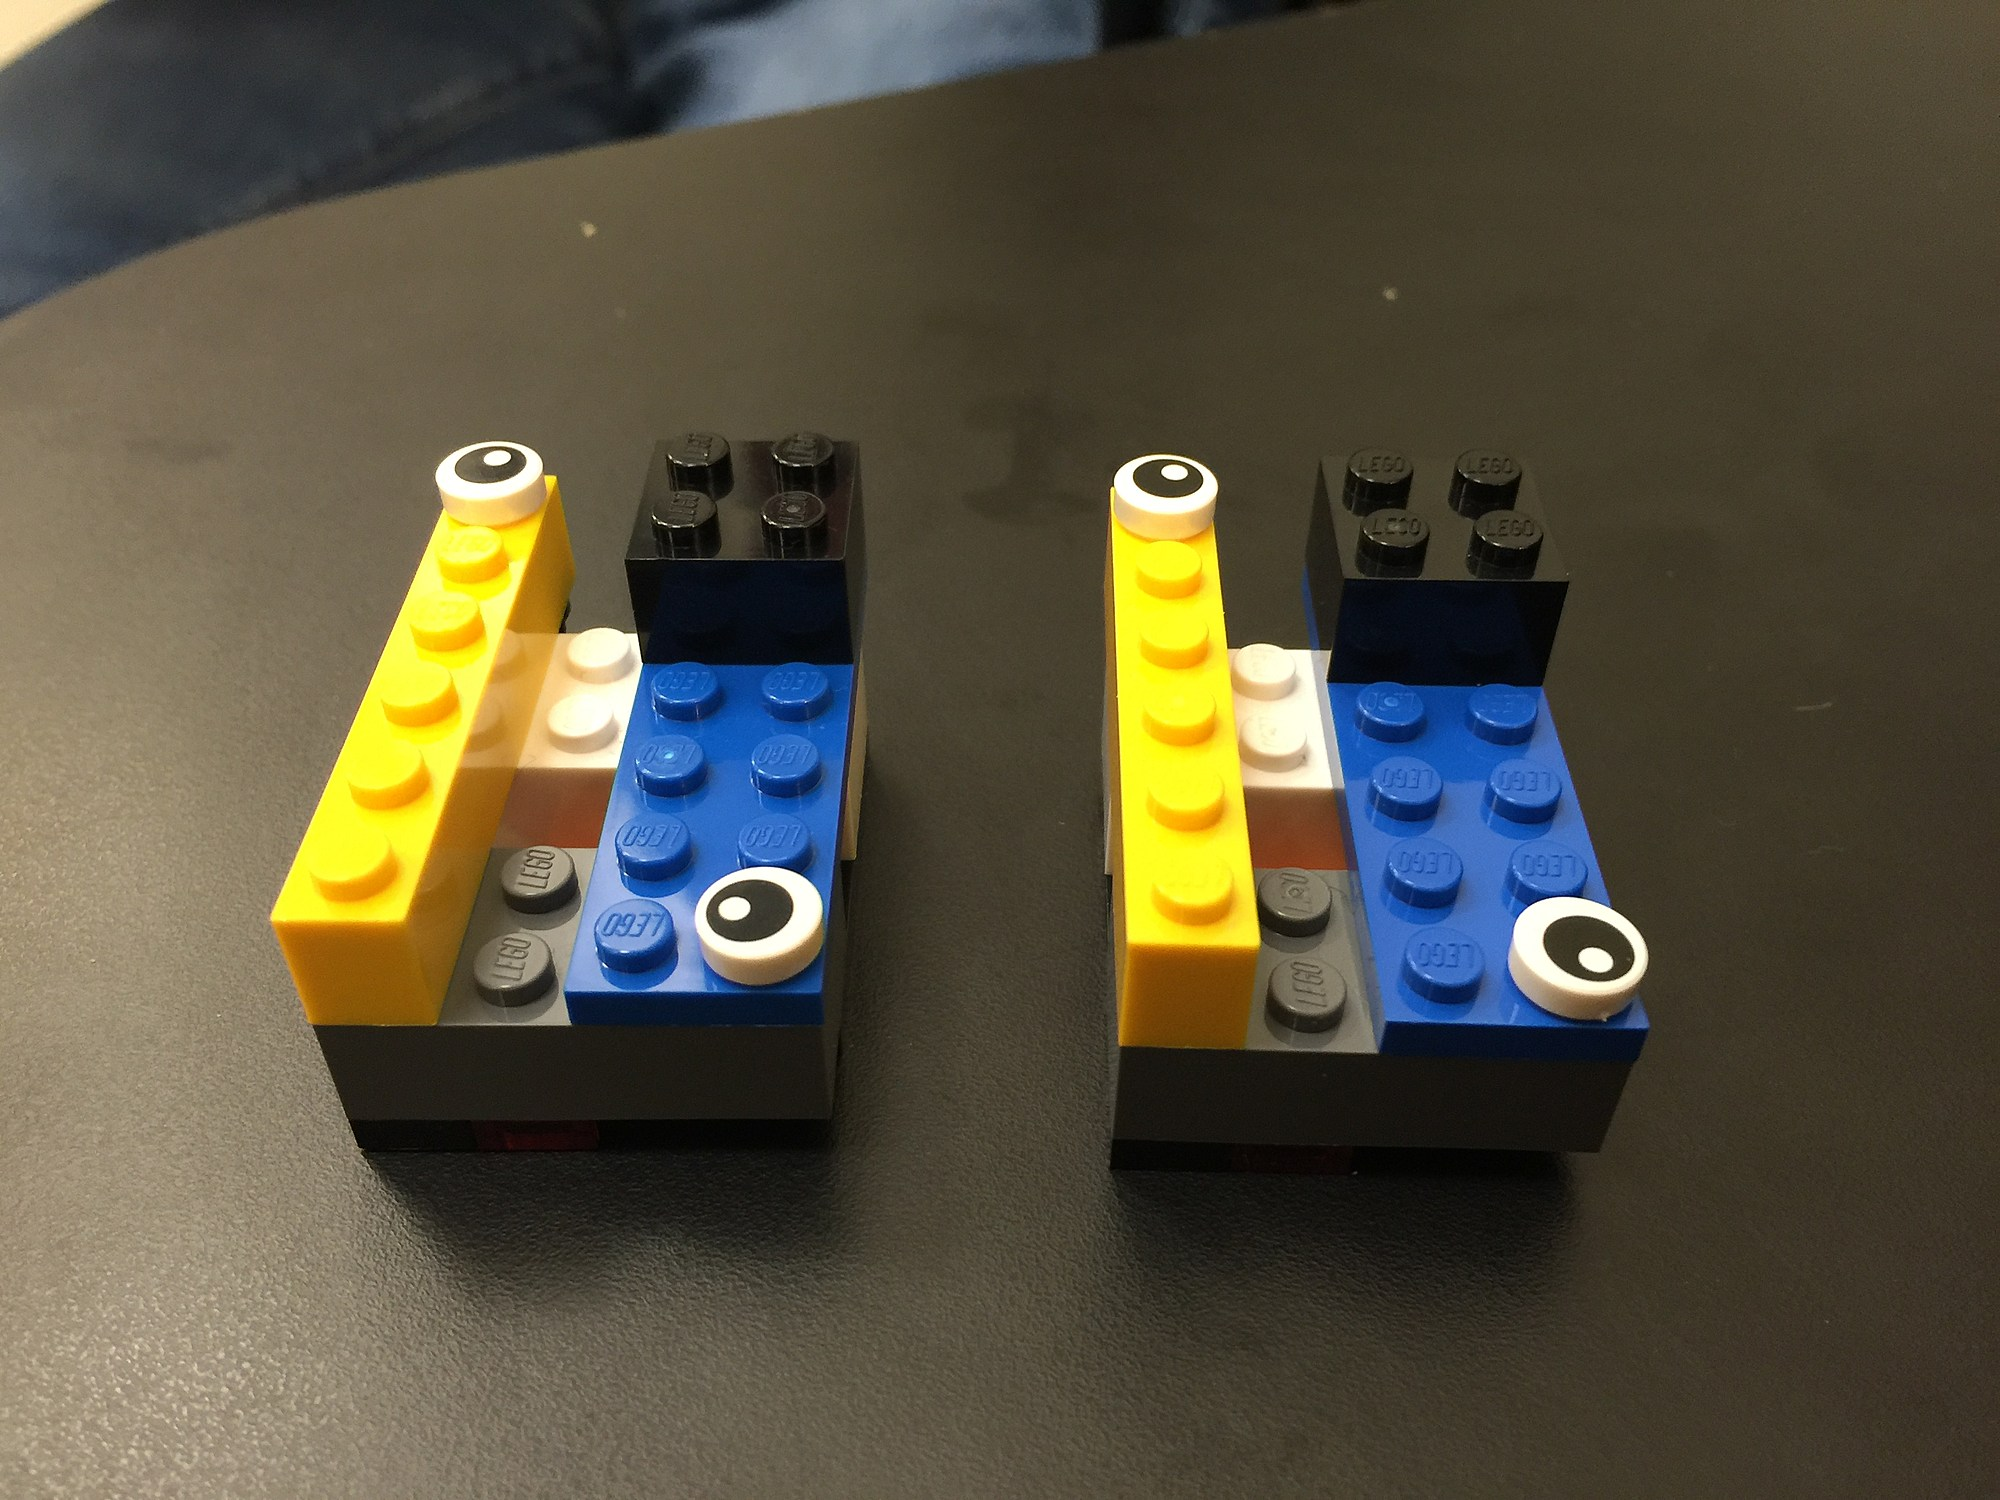 Cureus   Not Your Typical Simulation Workshop  Using LEGOs to Train     Download full size